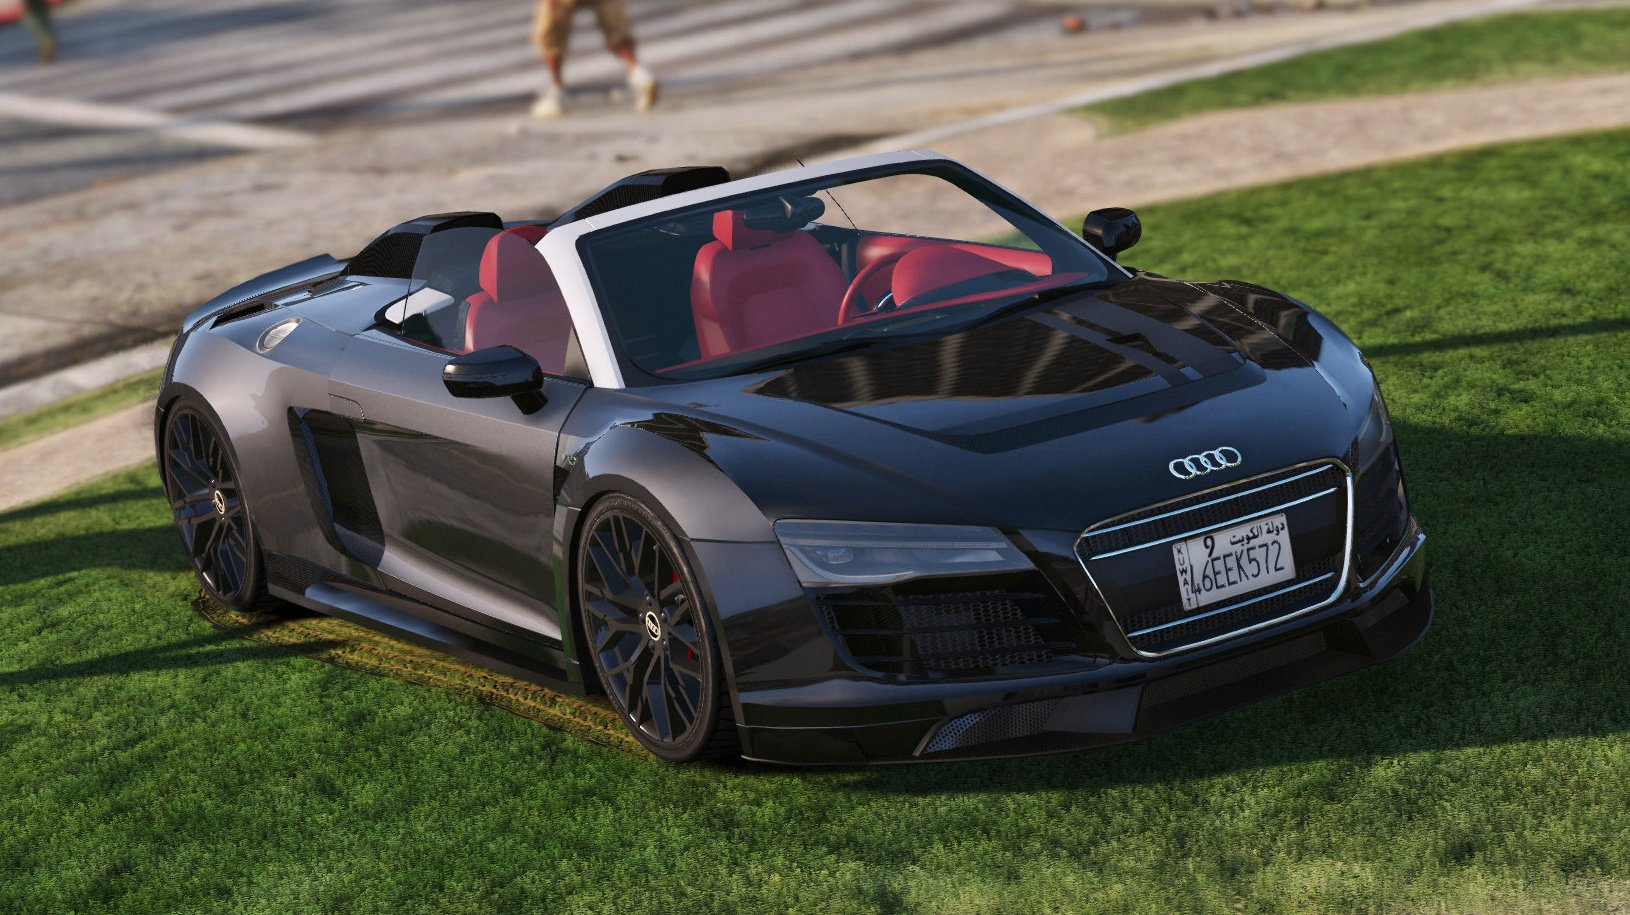 2013 Audi R8 V10 Amp Ppi Razor Tuning Add On Gta5 Mods Com